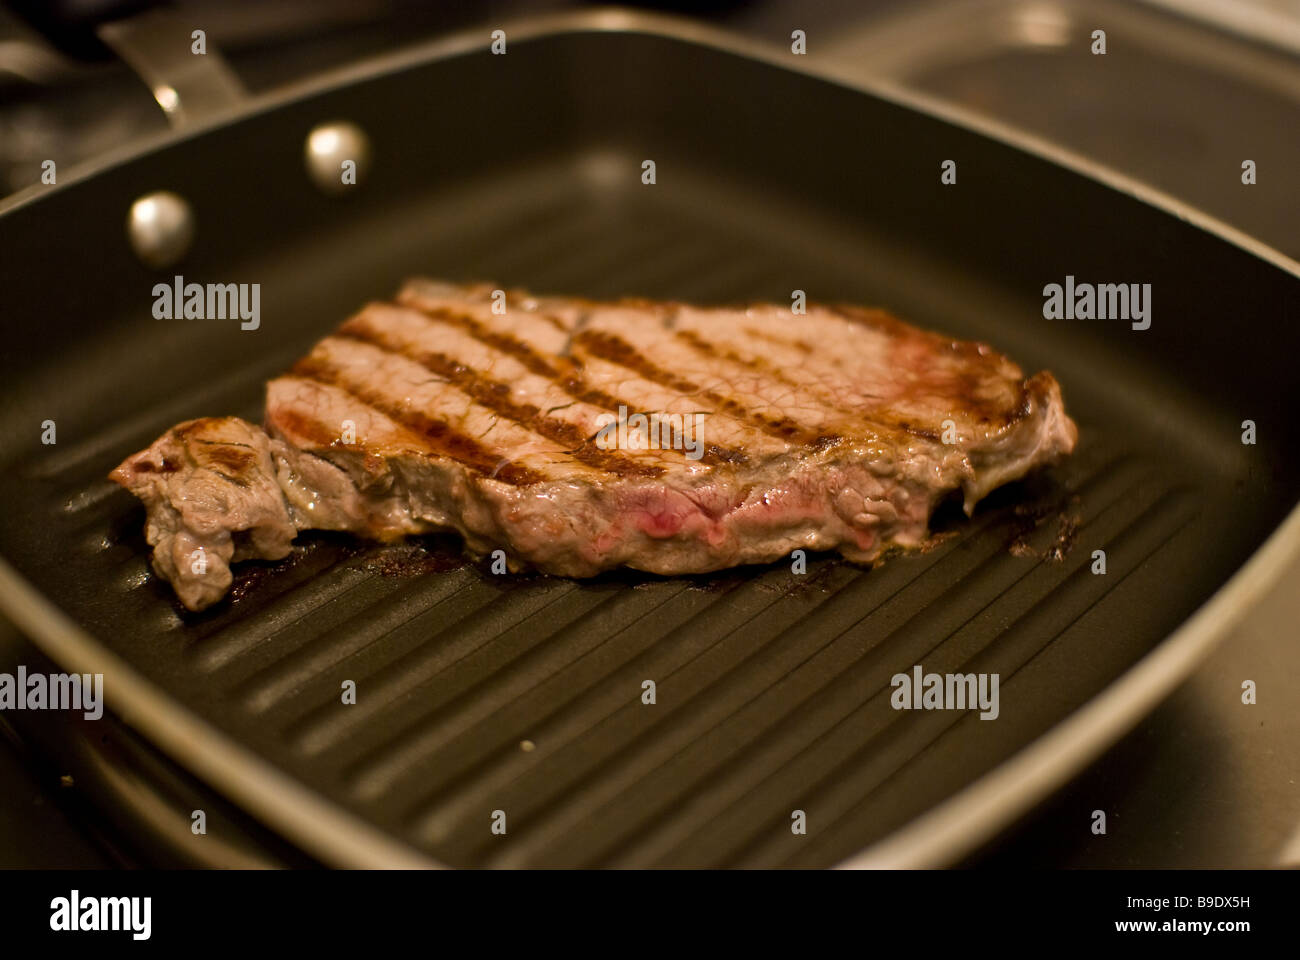 A Sirloin Steak Frying In A Griddle Pan Stock Image Hatch Chiles Roasting  On A Griddle How To Cook Pork Chops On Griddle